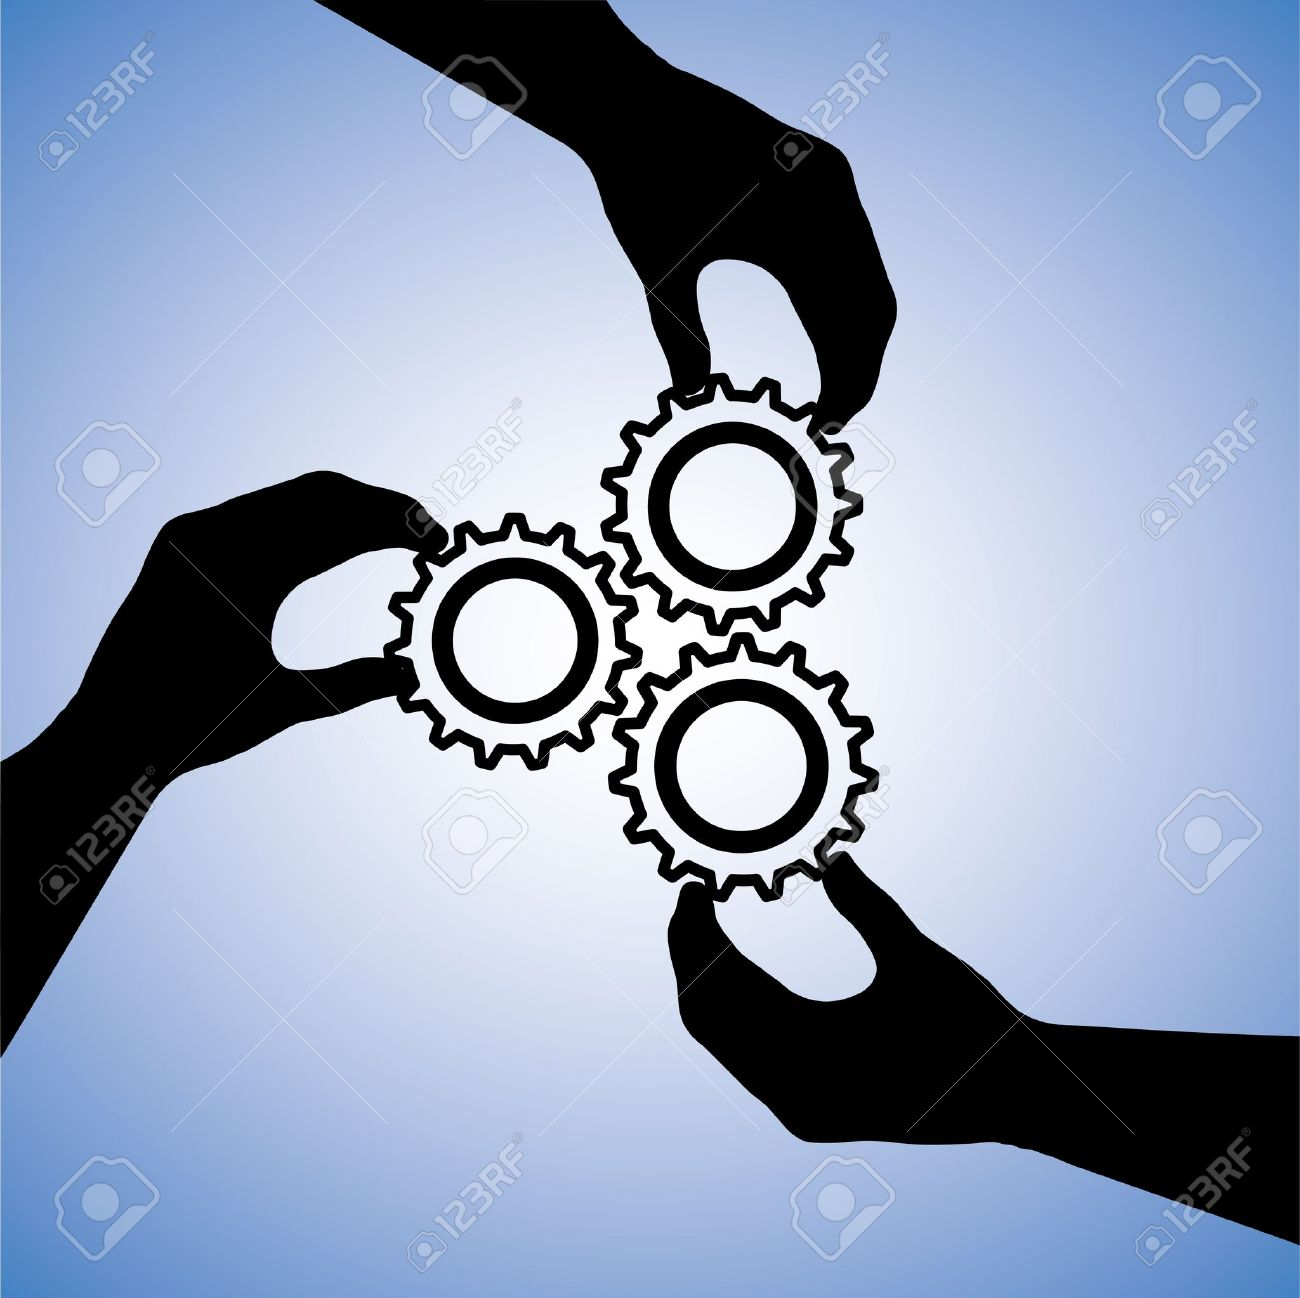 Concept illustration of teamwork and people co-operating for team success. The graphic includes hand silhouettes holding cogwheels together indicating collaboration and joining hands for success Stock Vector - 15577494